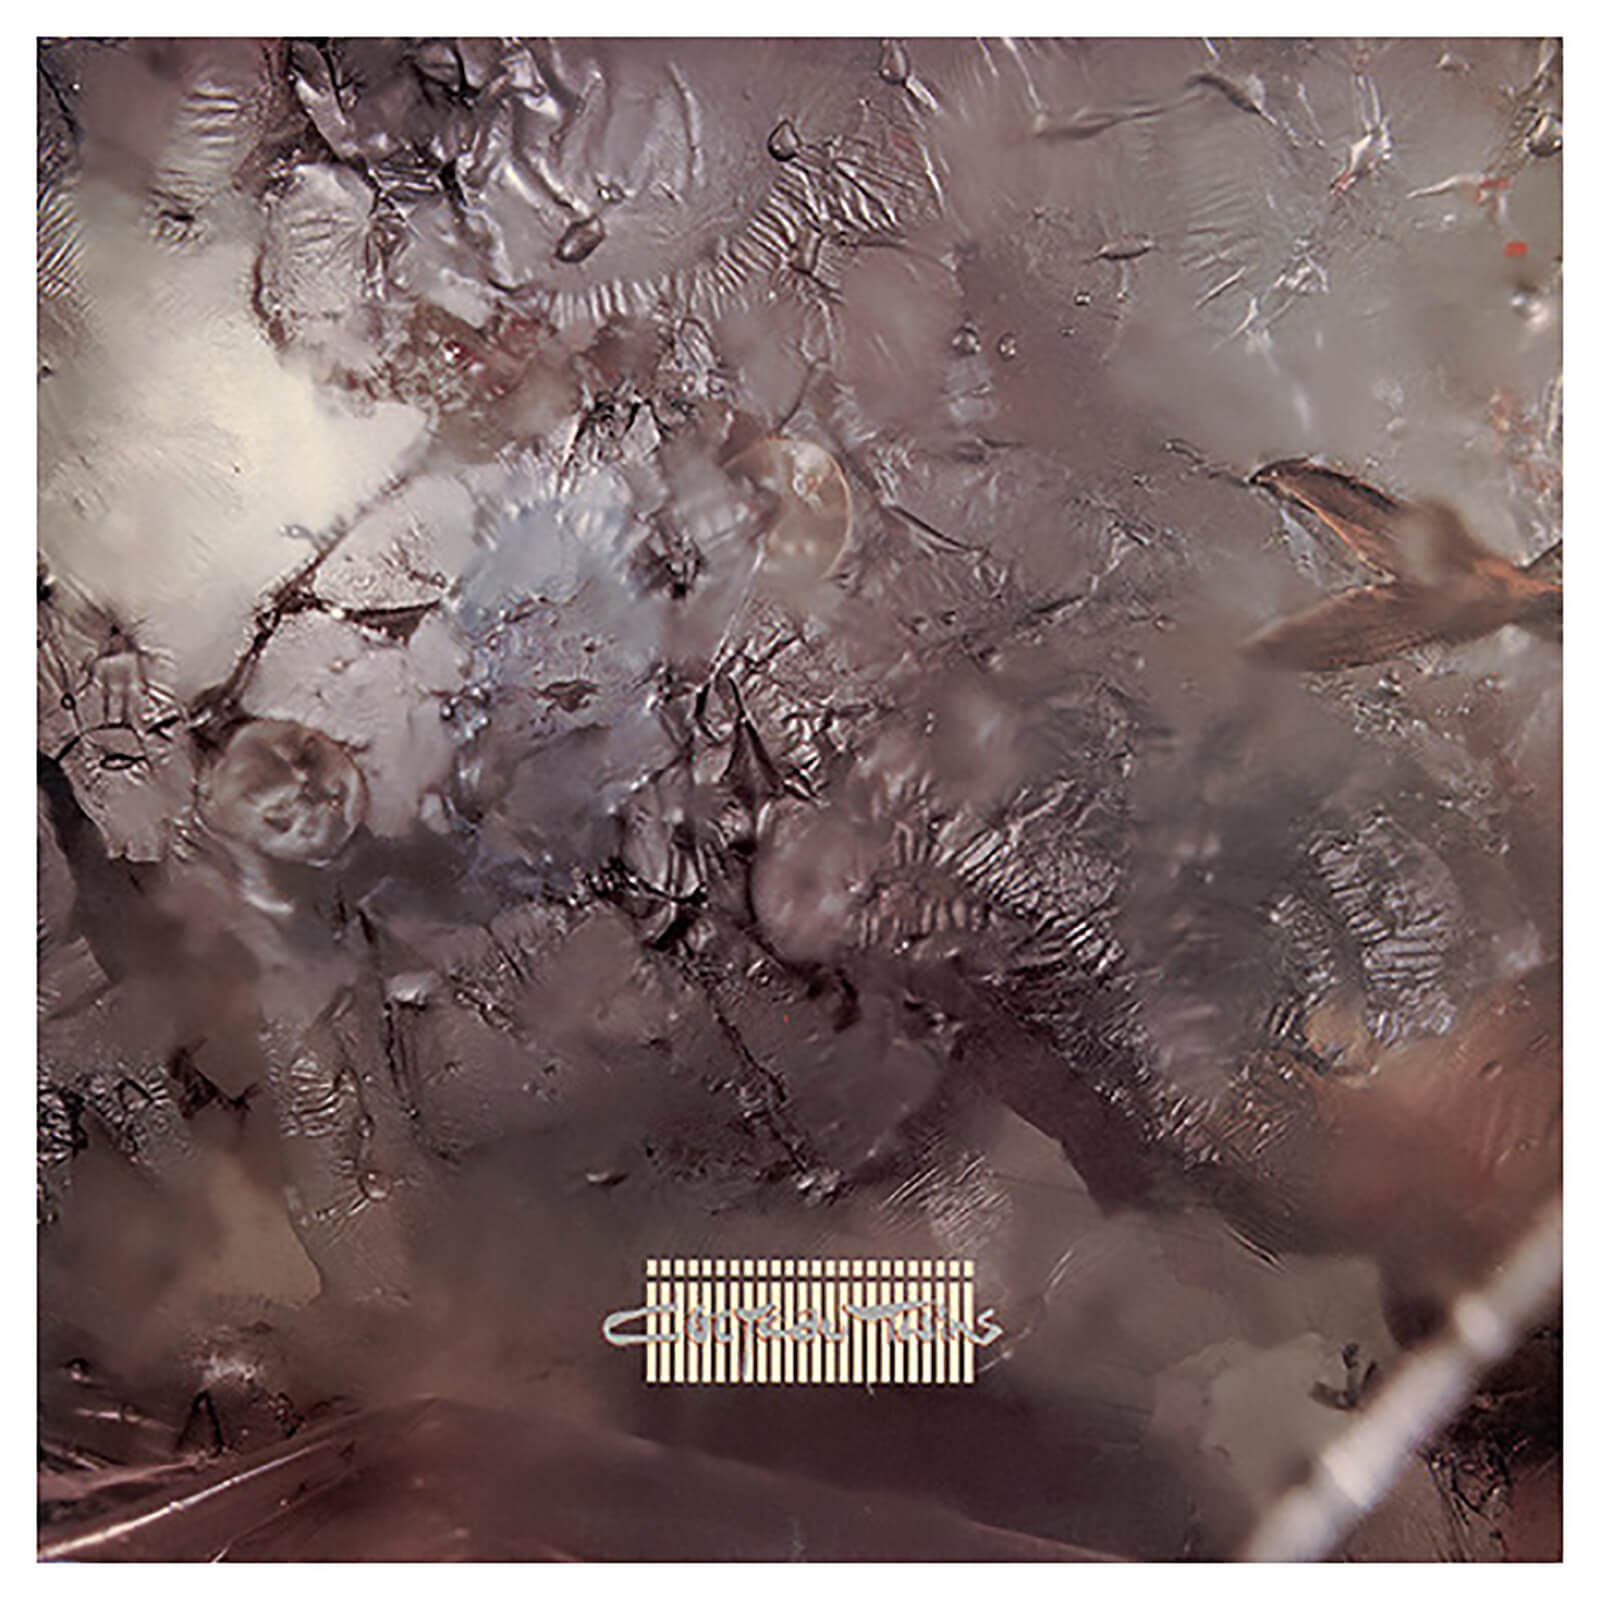 Cocteau Twins - Head Over Heels - Vinyl